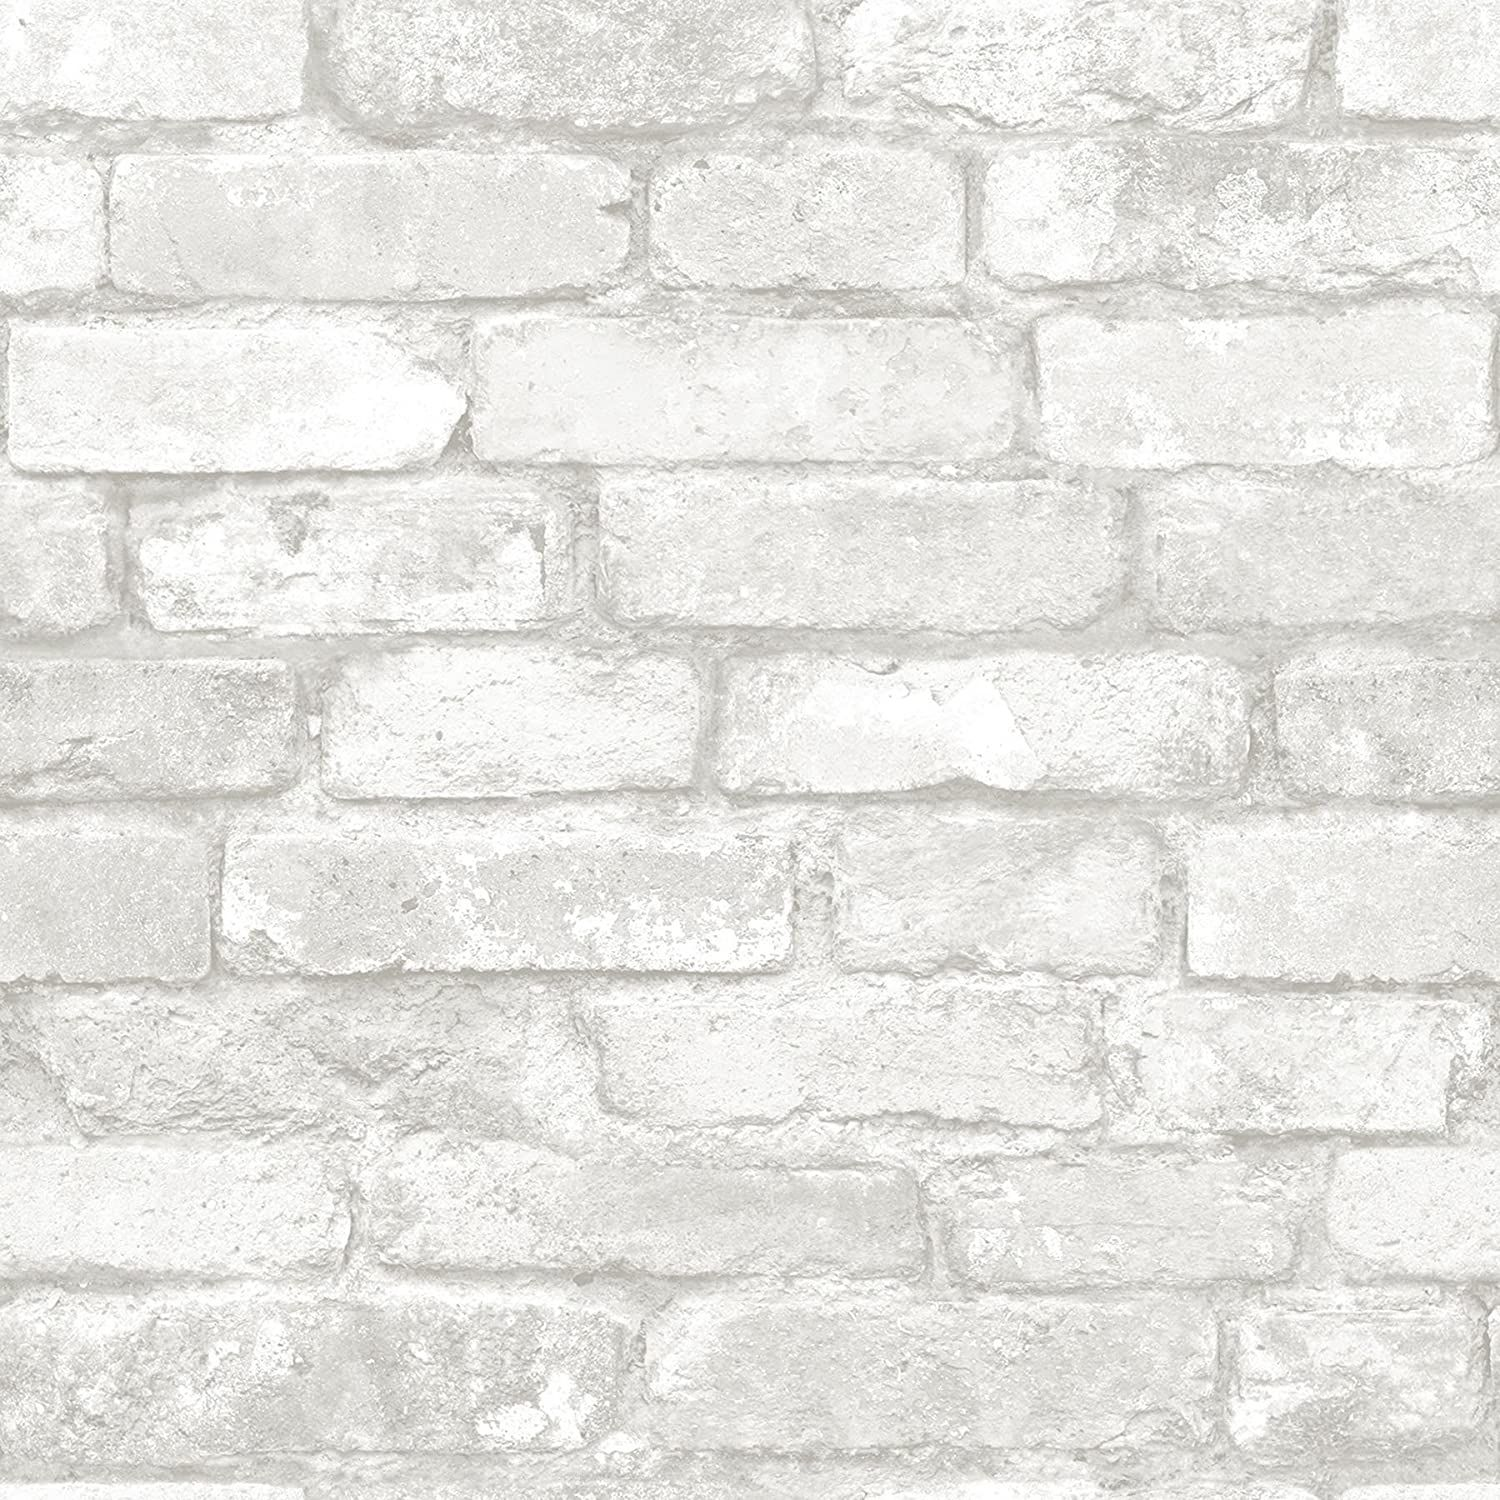 Pin By Cristina On Mis Pines Guardados In 2021 Nuwallpaper Removable Brick Wallpaper White Brick